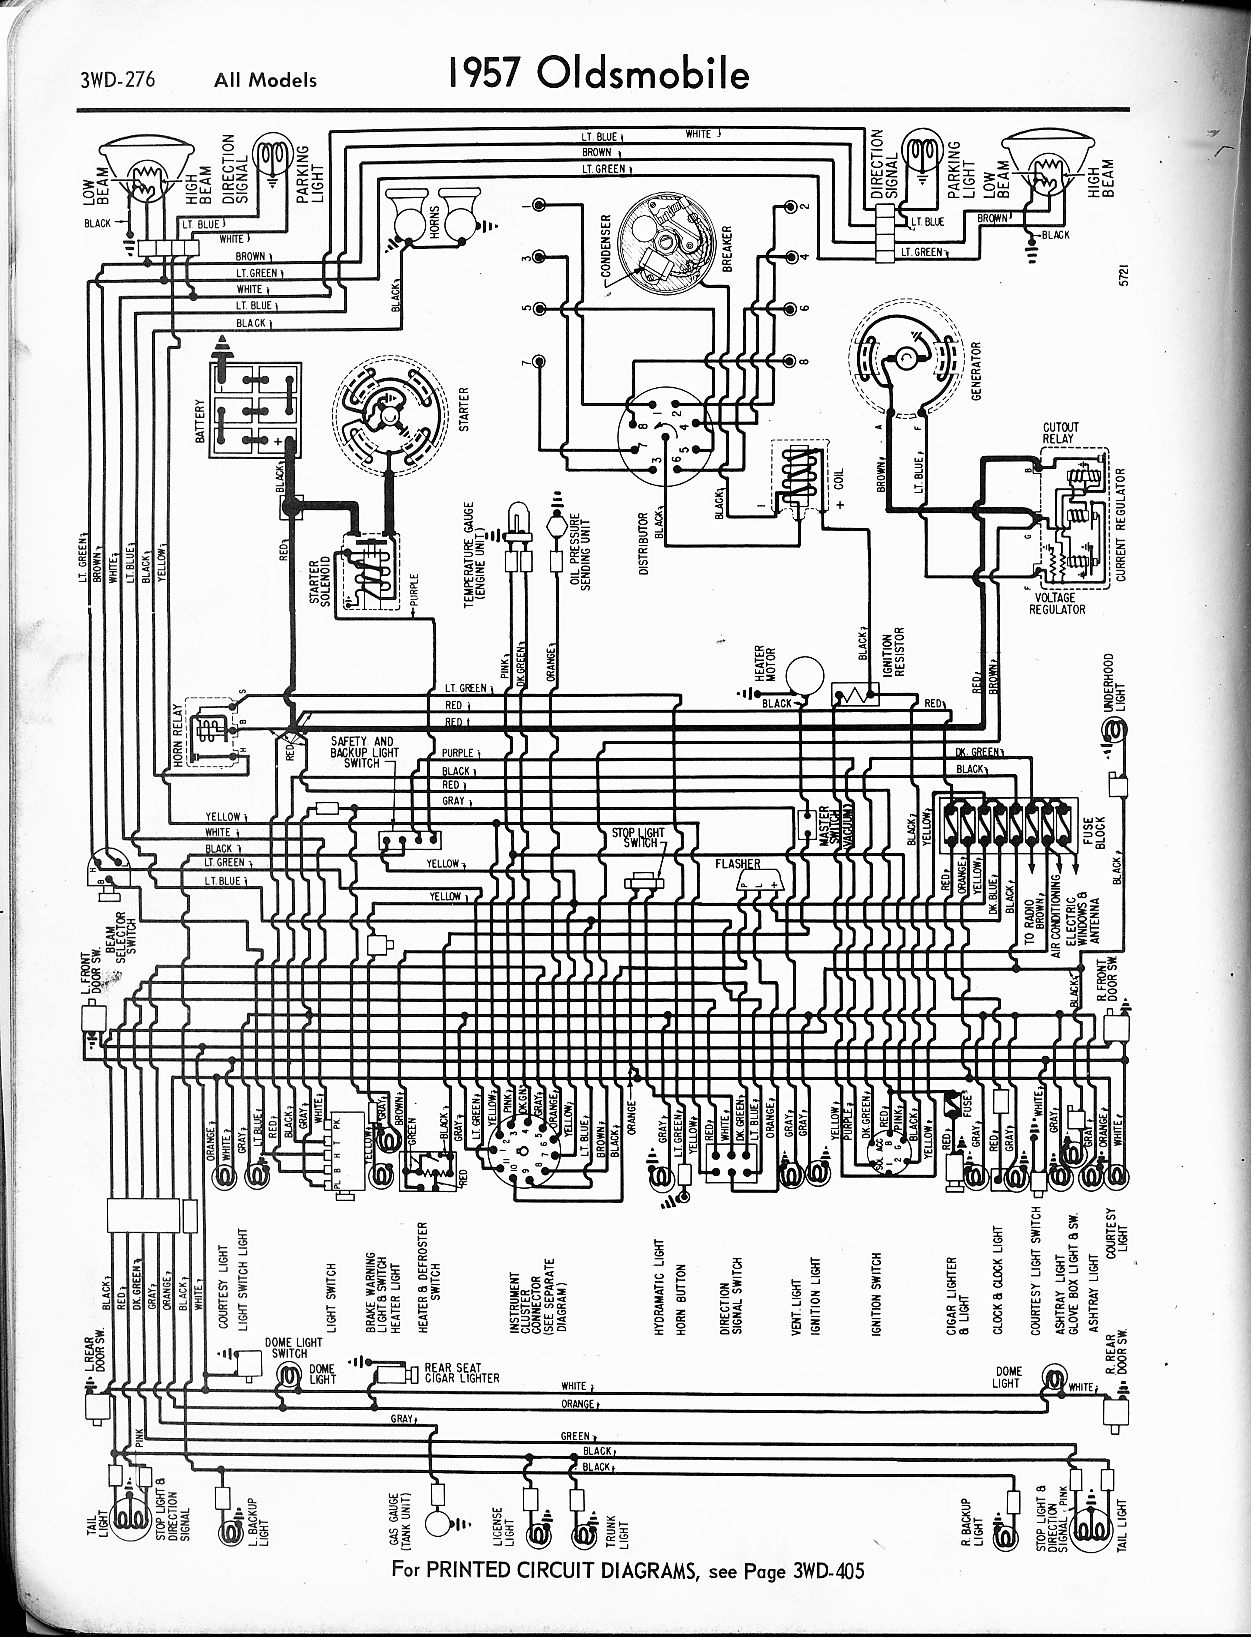 Old Air Products Wiring Diagram Download Old Car Wiring Diagram on old car accessories, old car chassis, old car electrical systems, old car spec sheets, old car brakes, old car engine, old auto diagrams, old car charging system, old car ignition, old car parts, old car battery, old car blueprints, old car schematics,